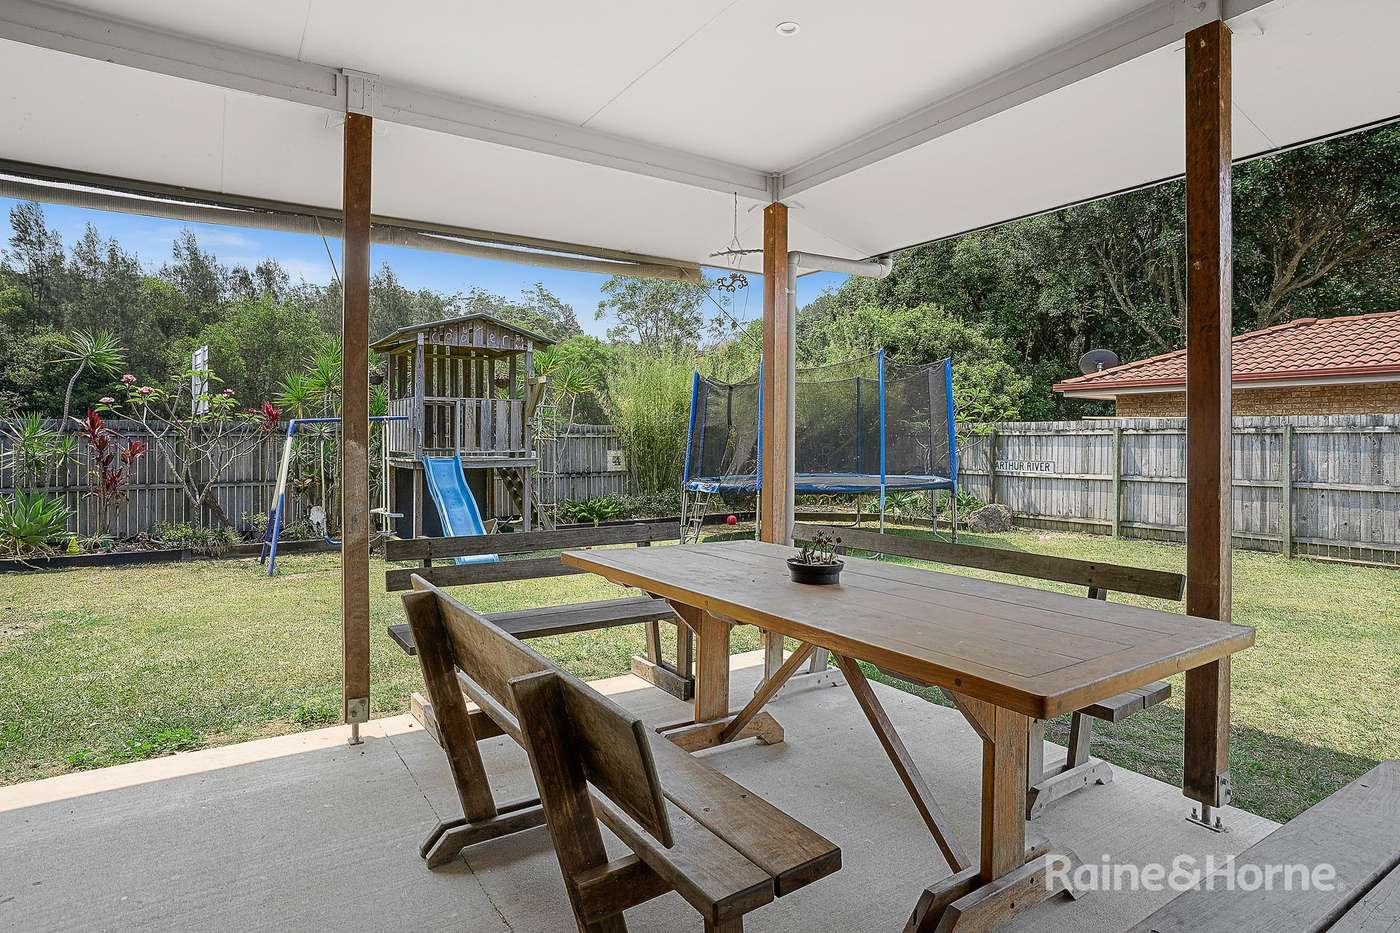 Main view of Homely house listing, 13 Balemo Drive, Ocean Shores, NSW 2483